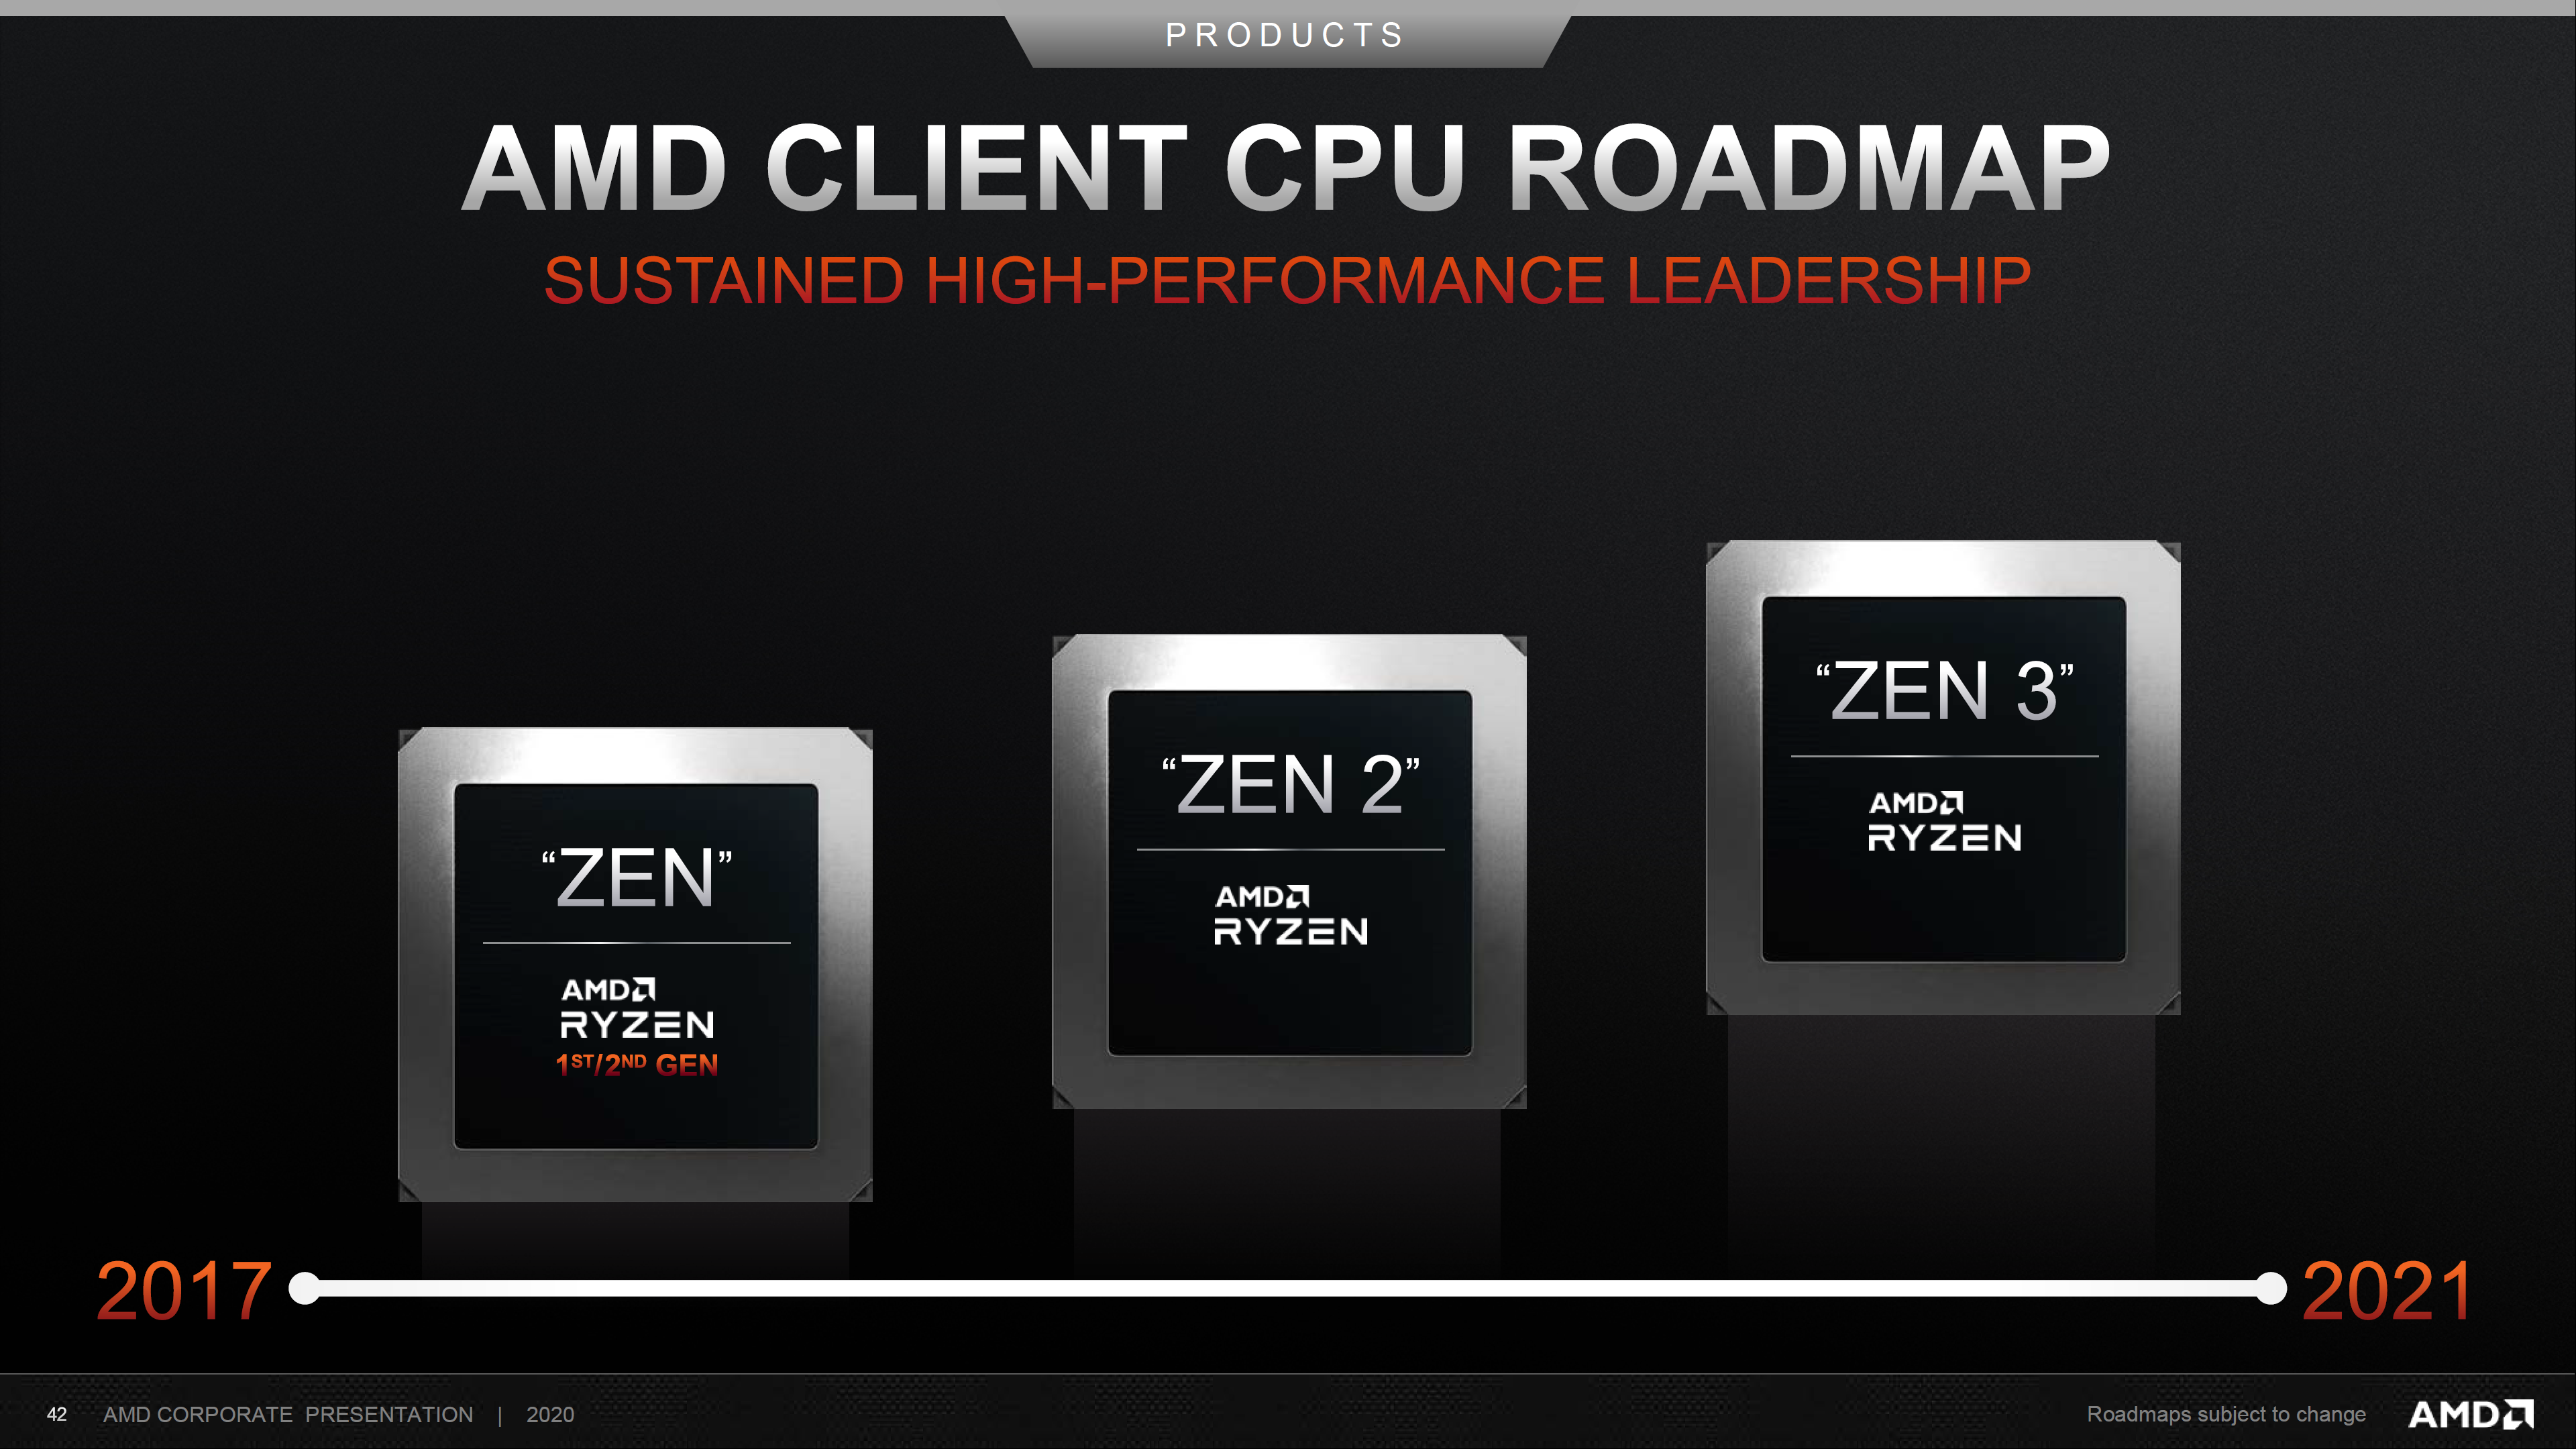 Amd Says Its High Performance Journey Will Continue With Zen 3 Powered Ryzen 4000 Desktop Cpus Launching Later This Year